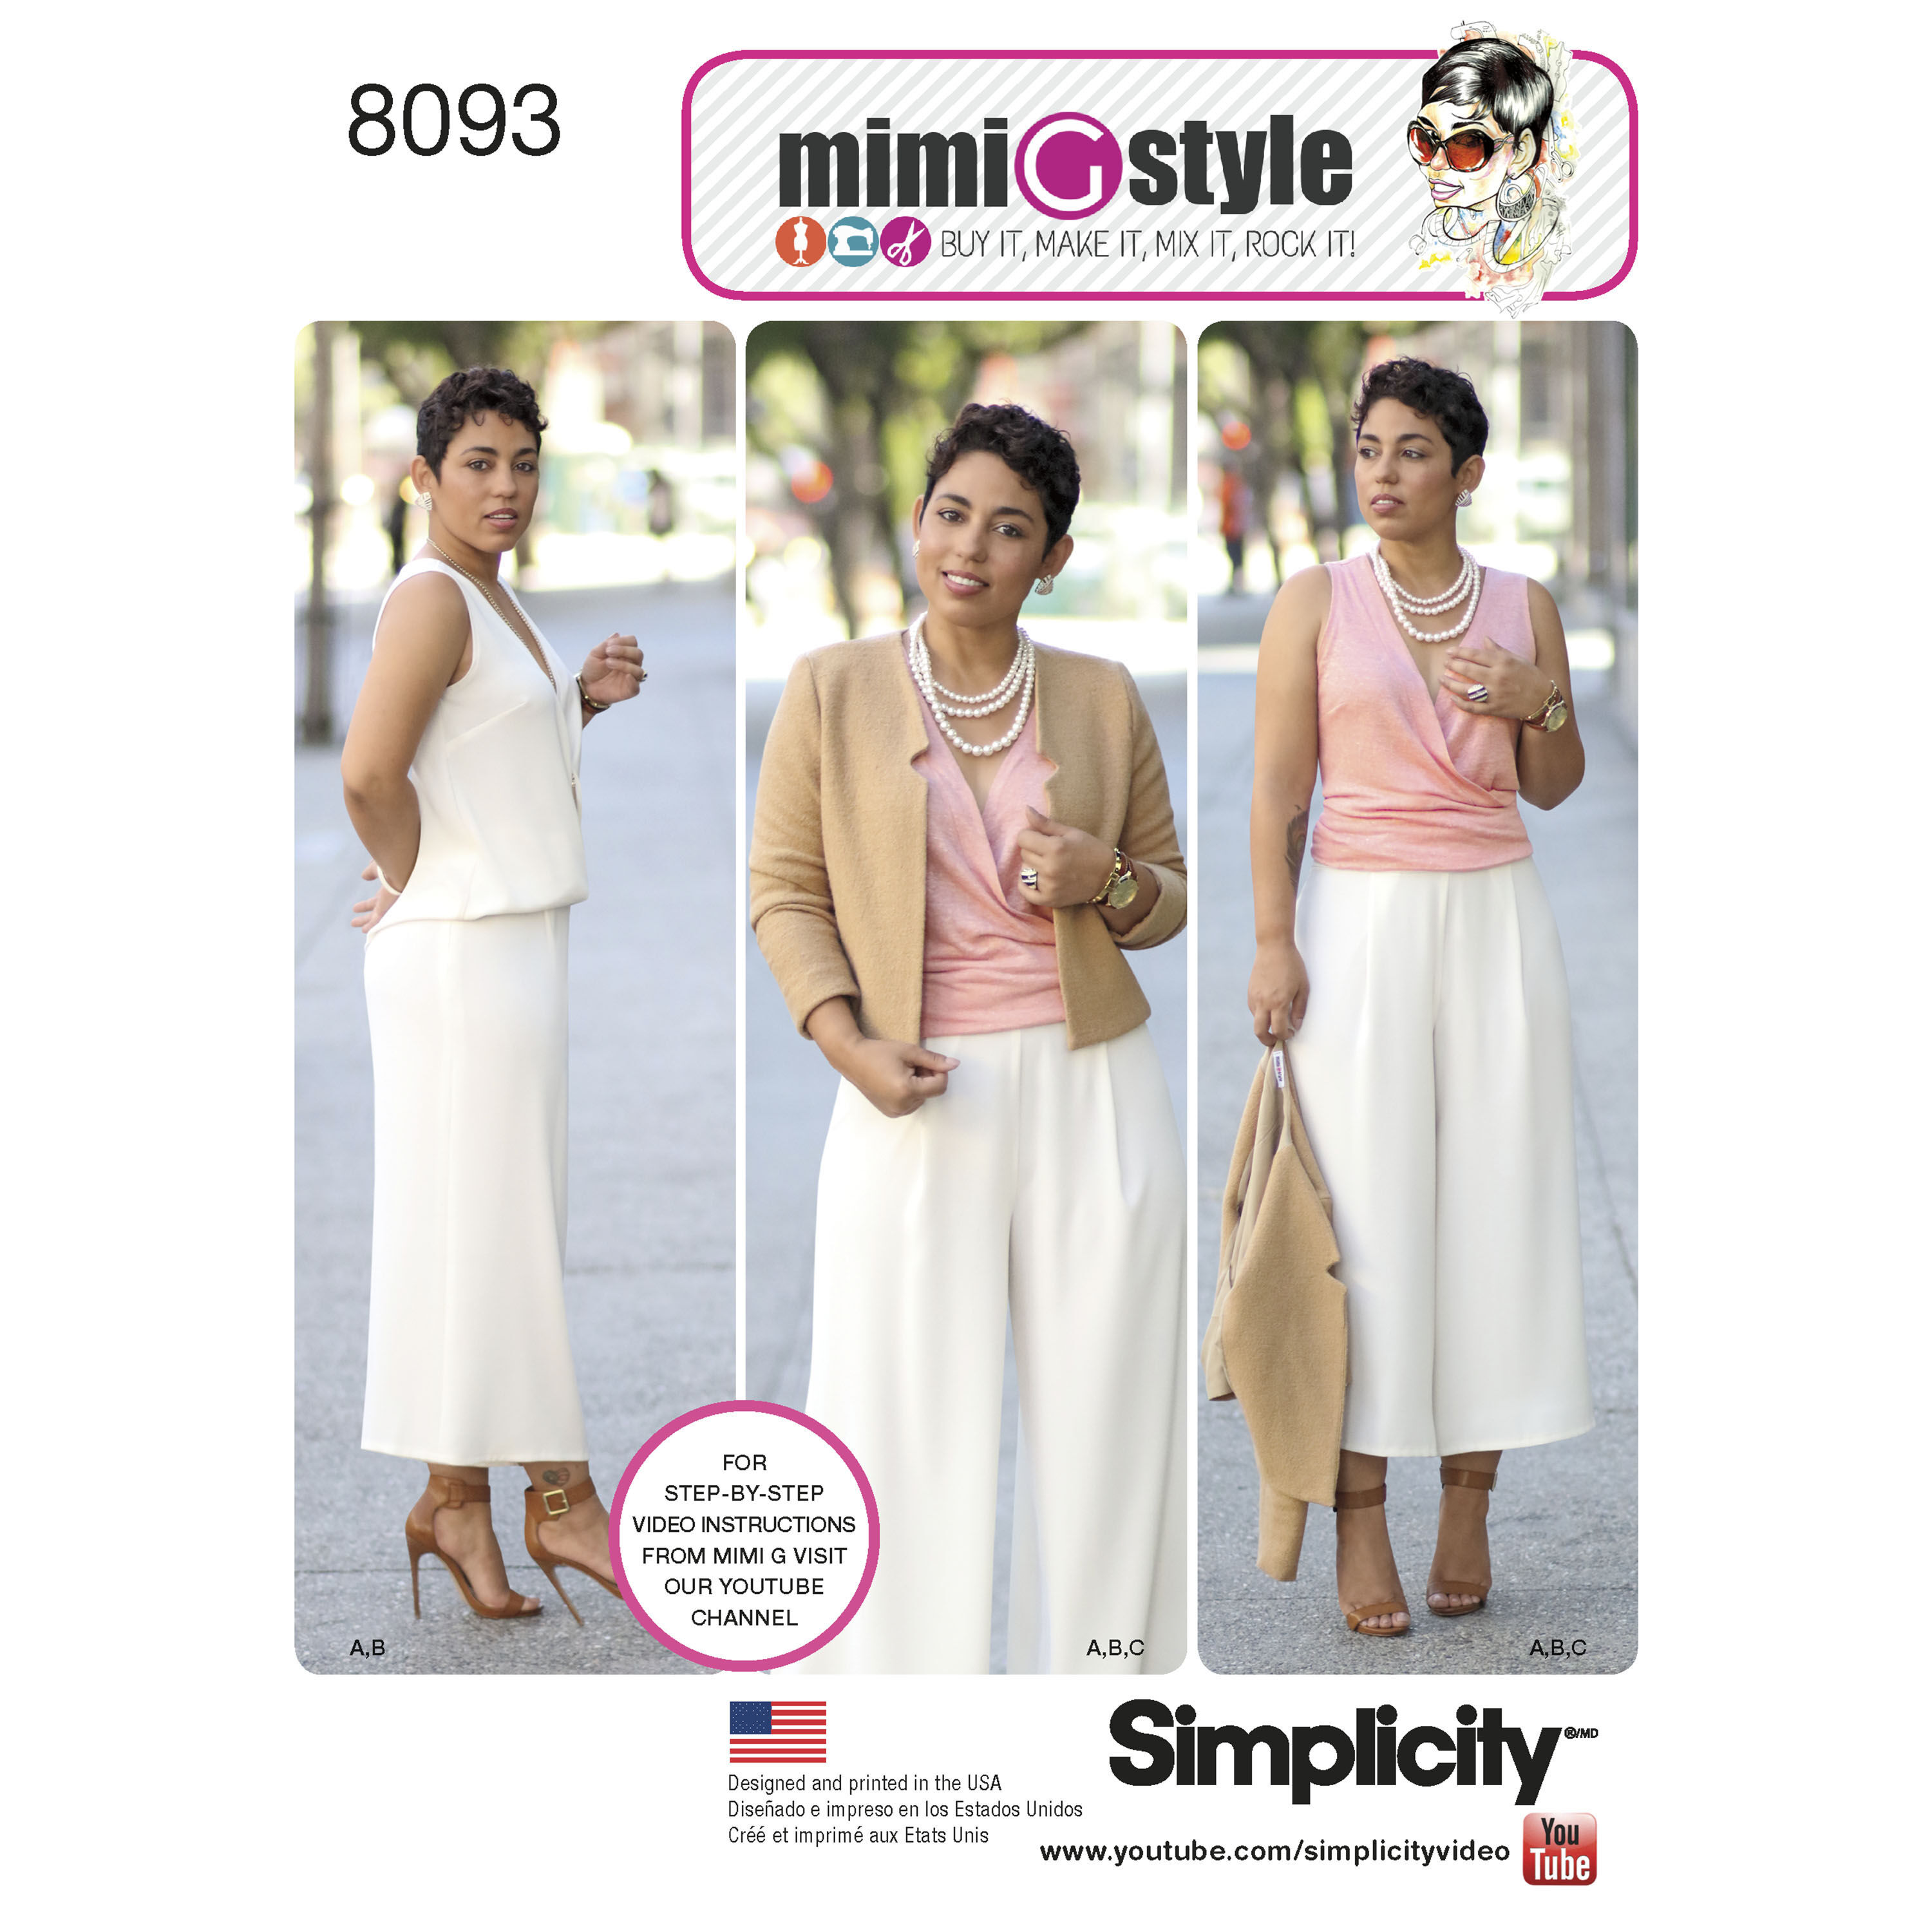 Simplicity Pattern 8093 Misses' Sportswear from Mimi G Style